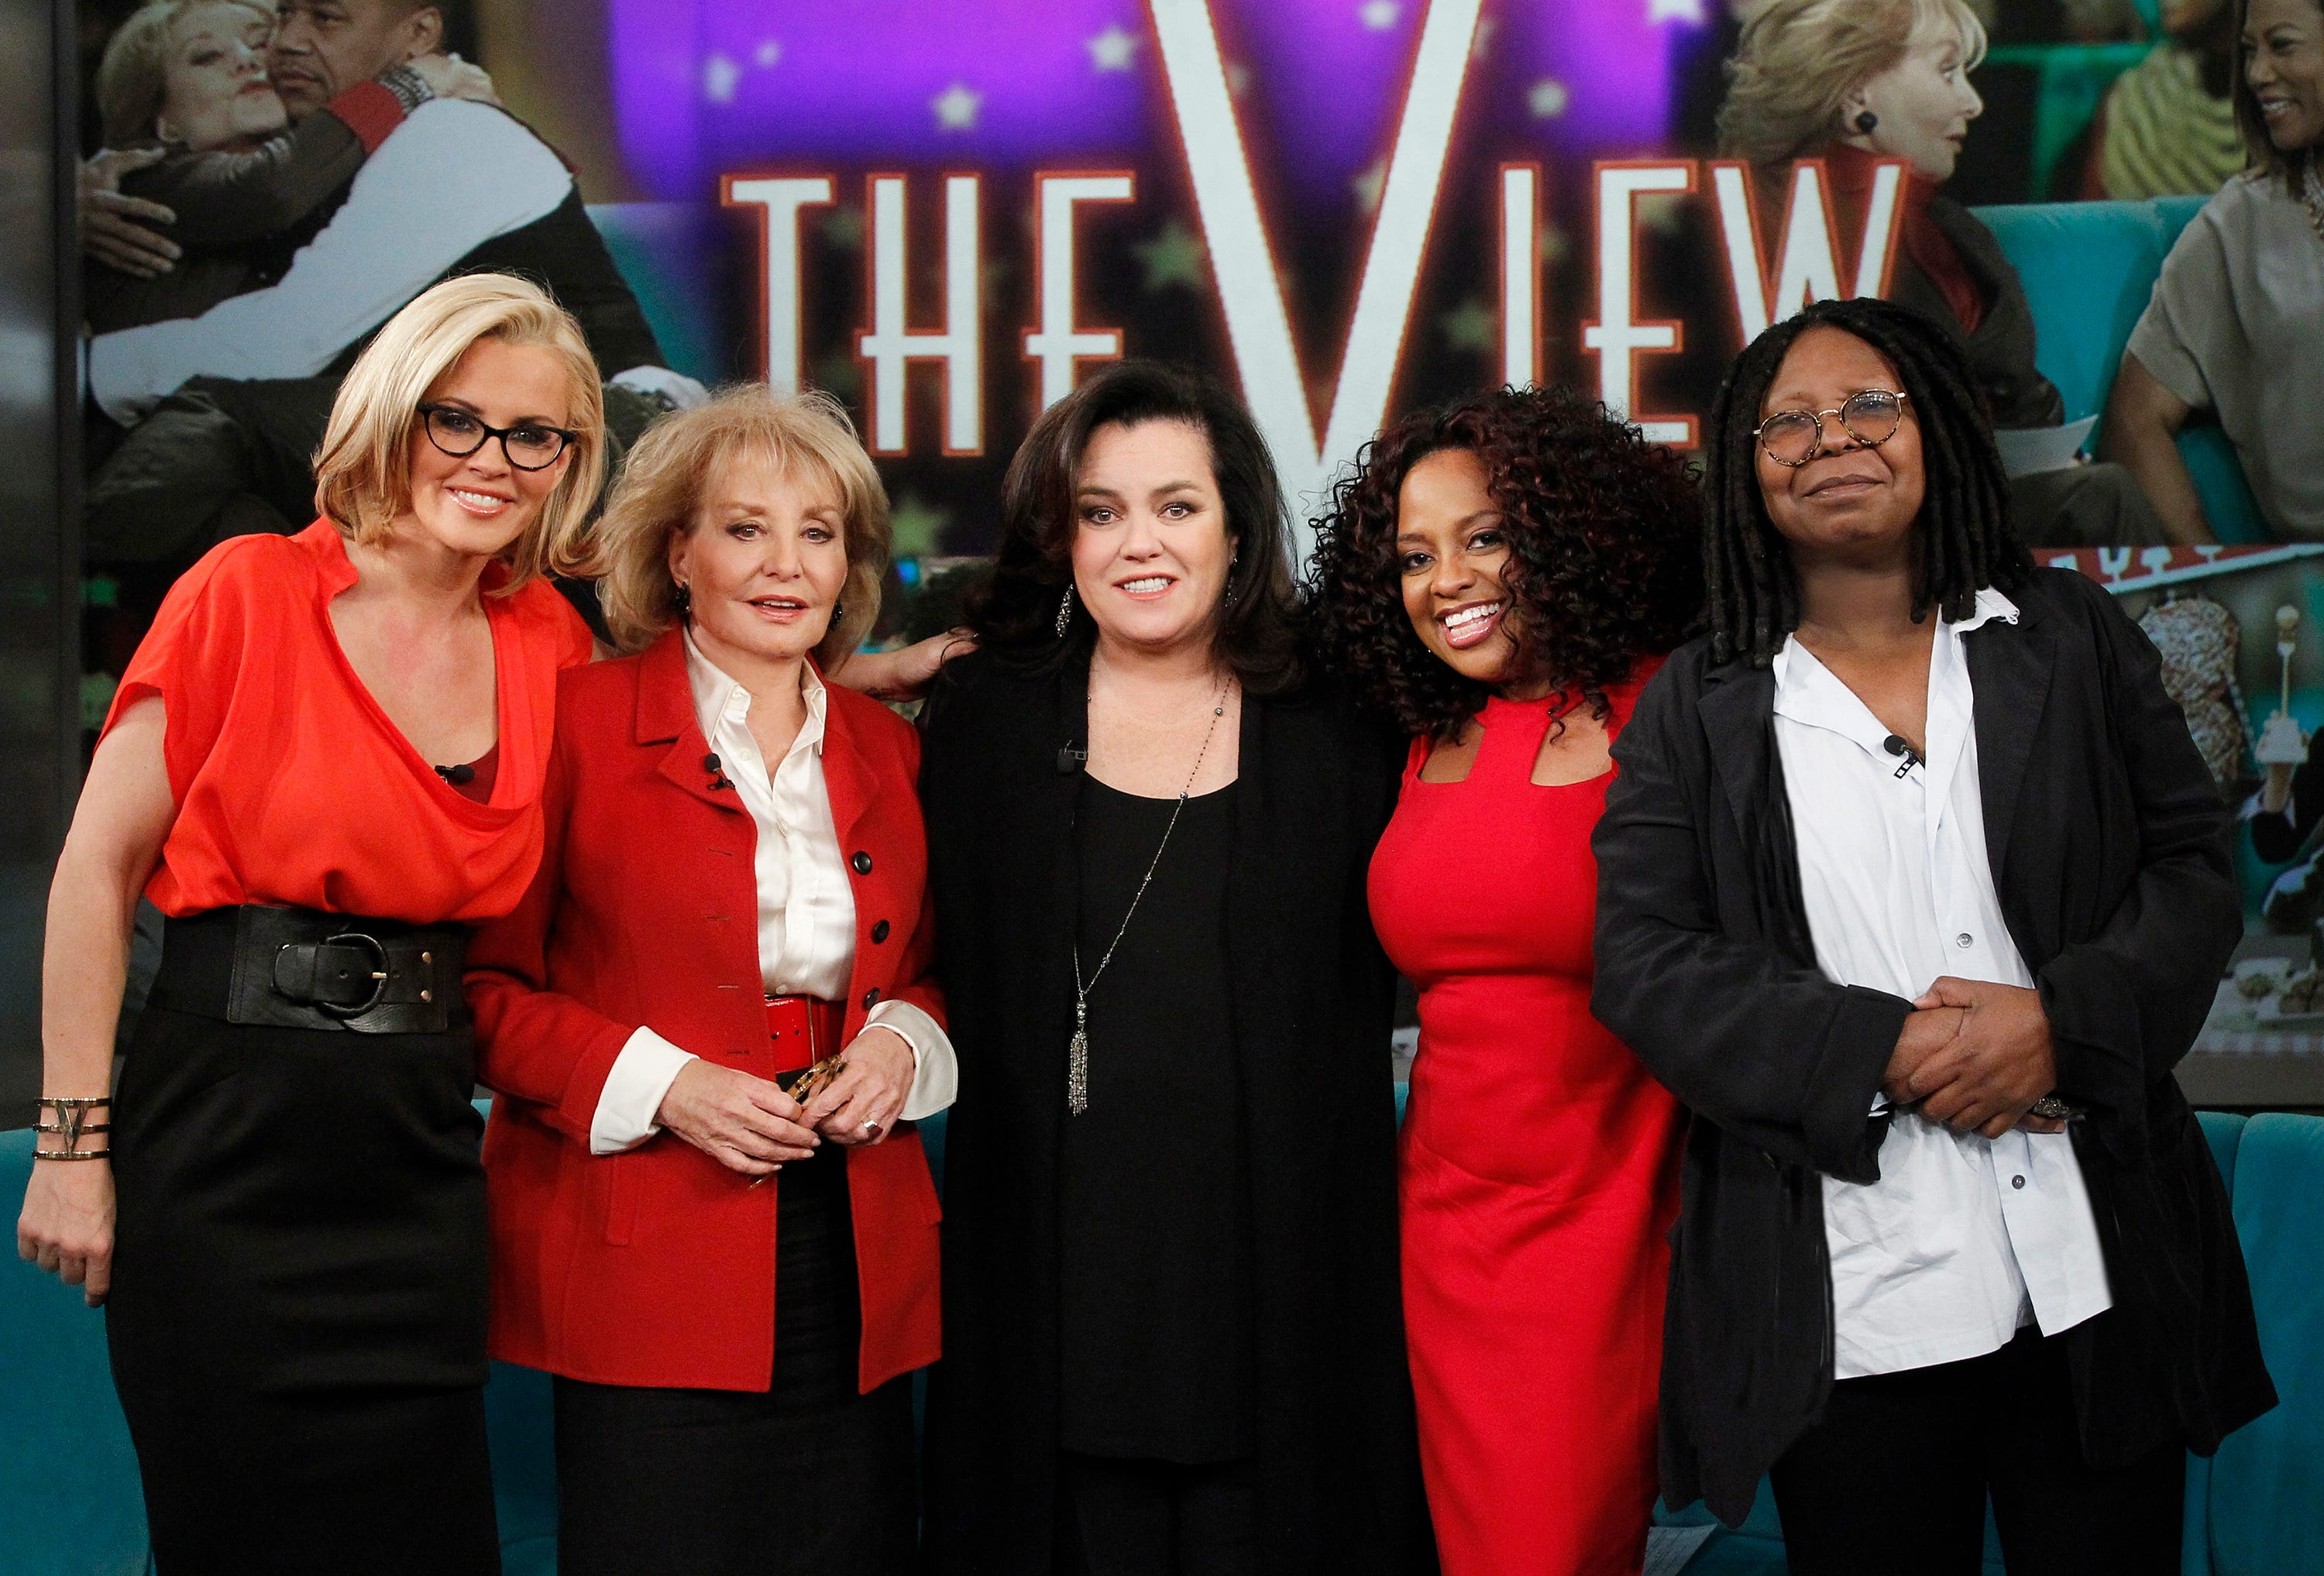 Jenny McCarthy: I was told to 'act Republican' on 'The View'